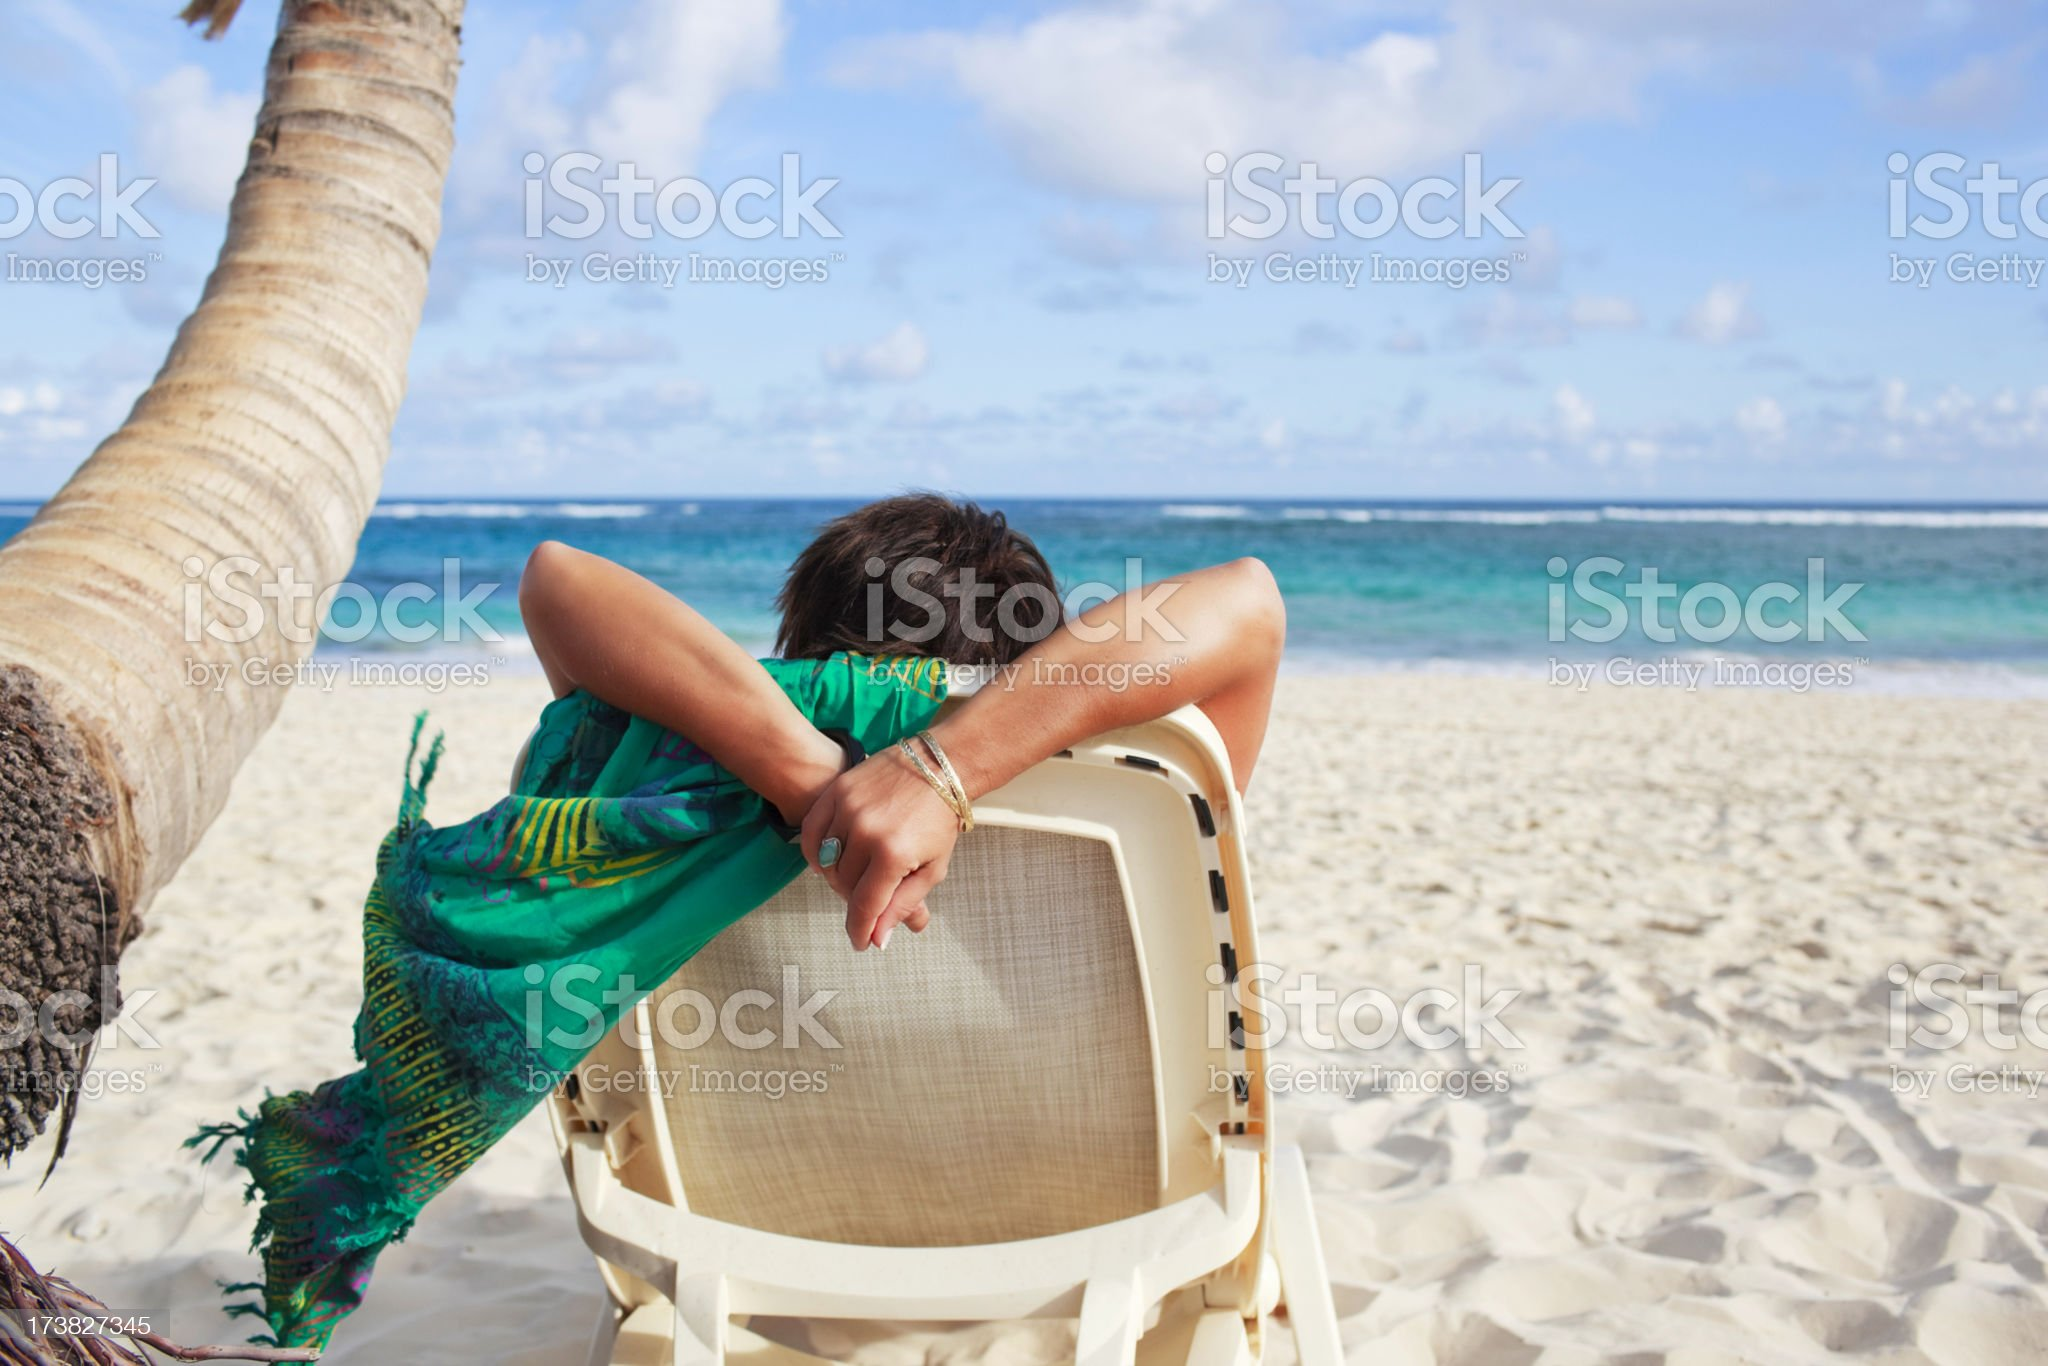 Beach Vacation Relaxation royalty-free stock photo